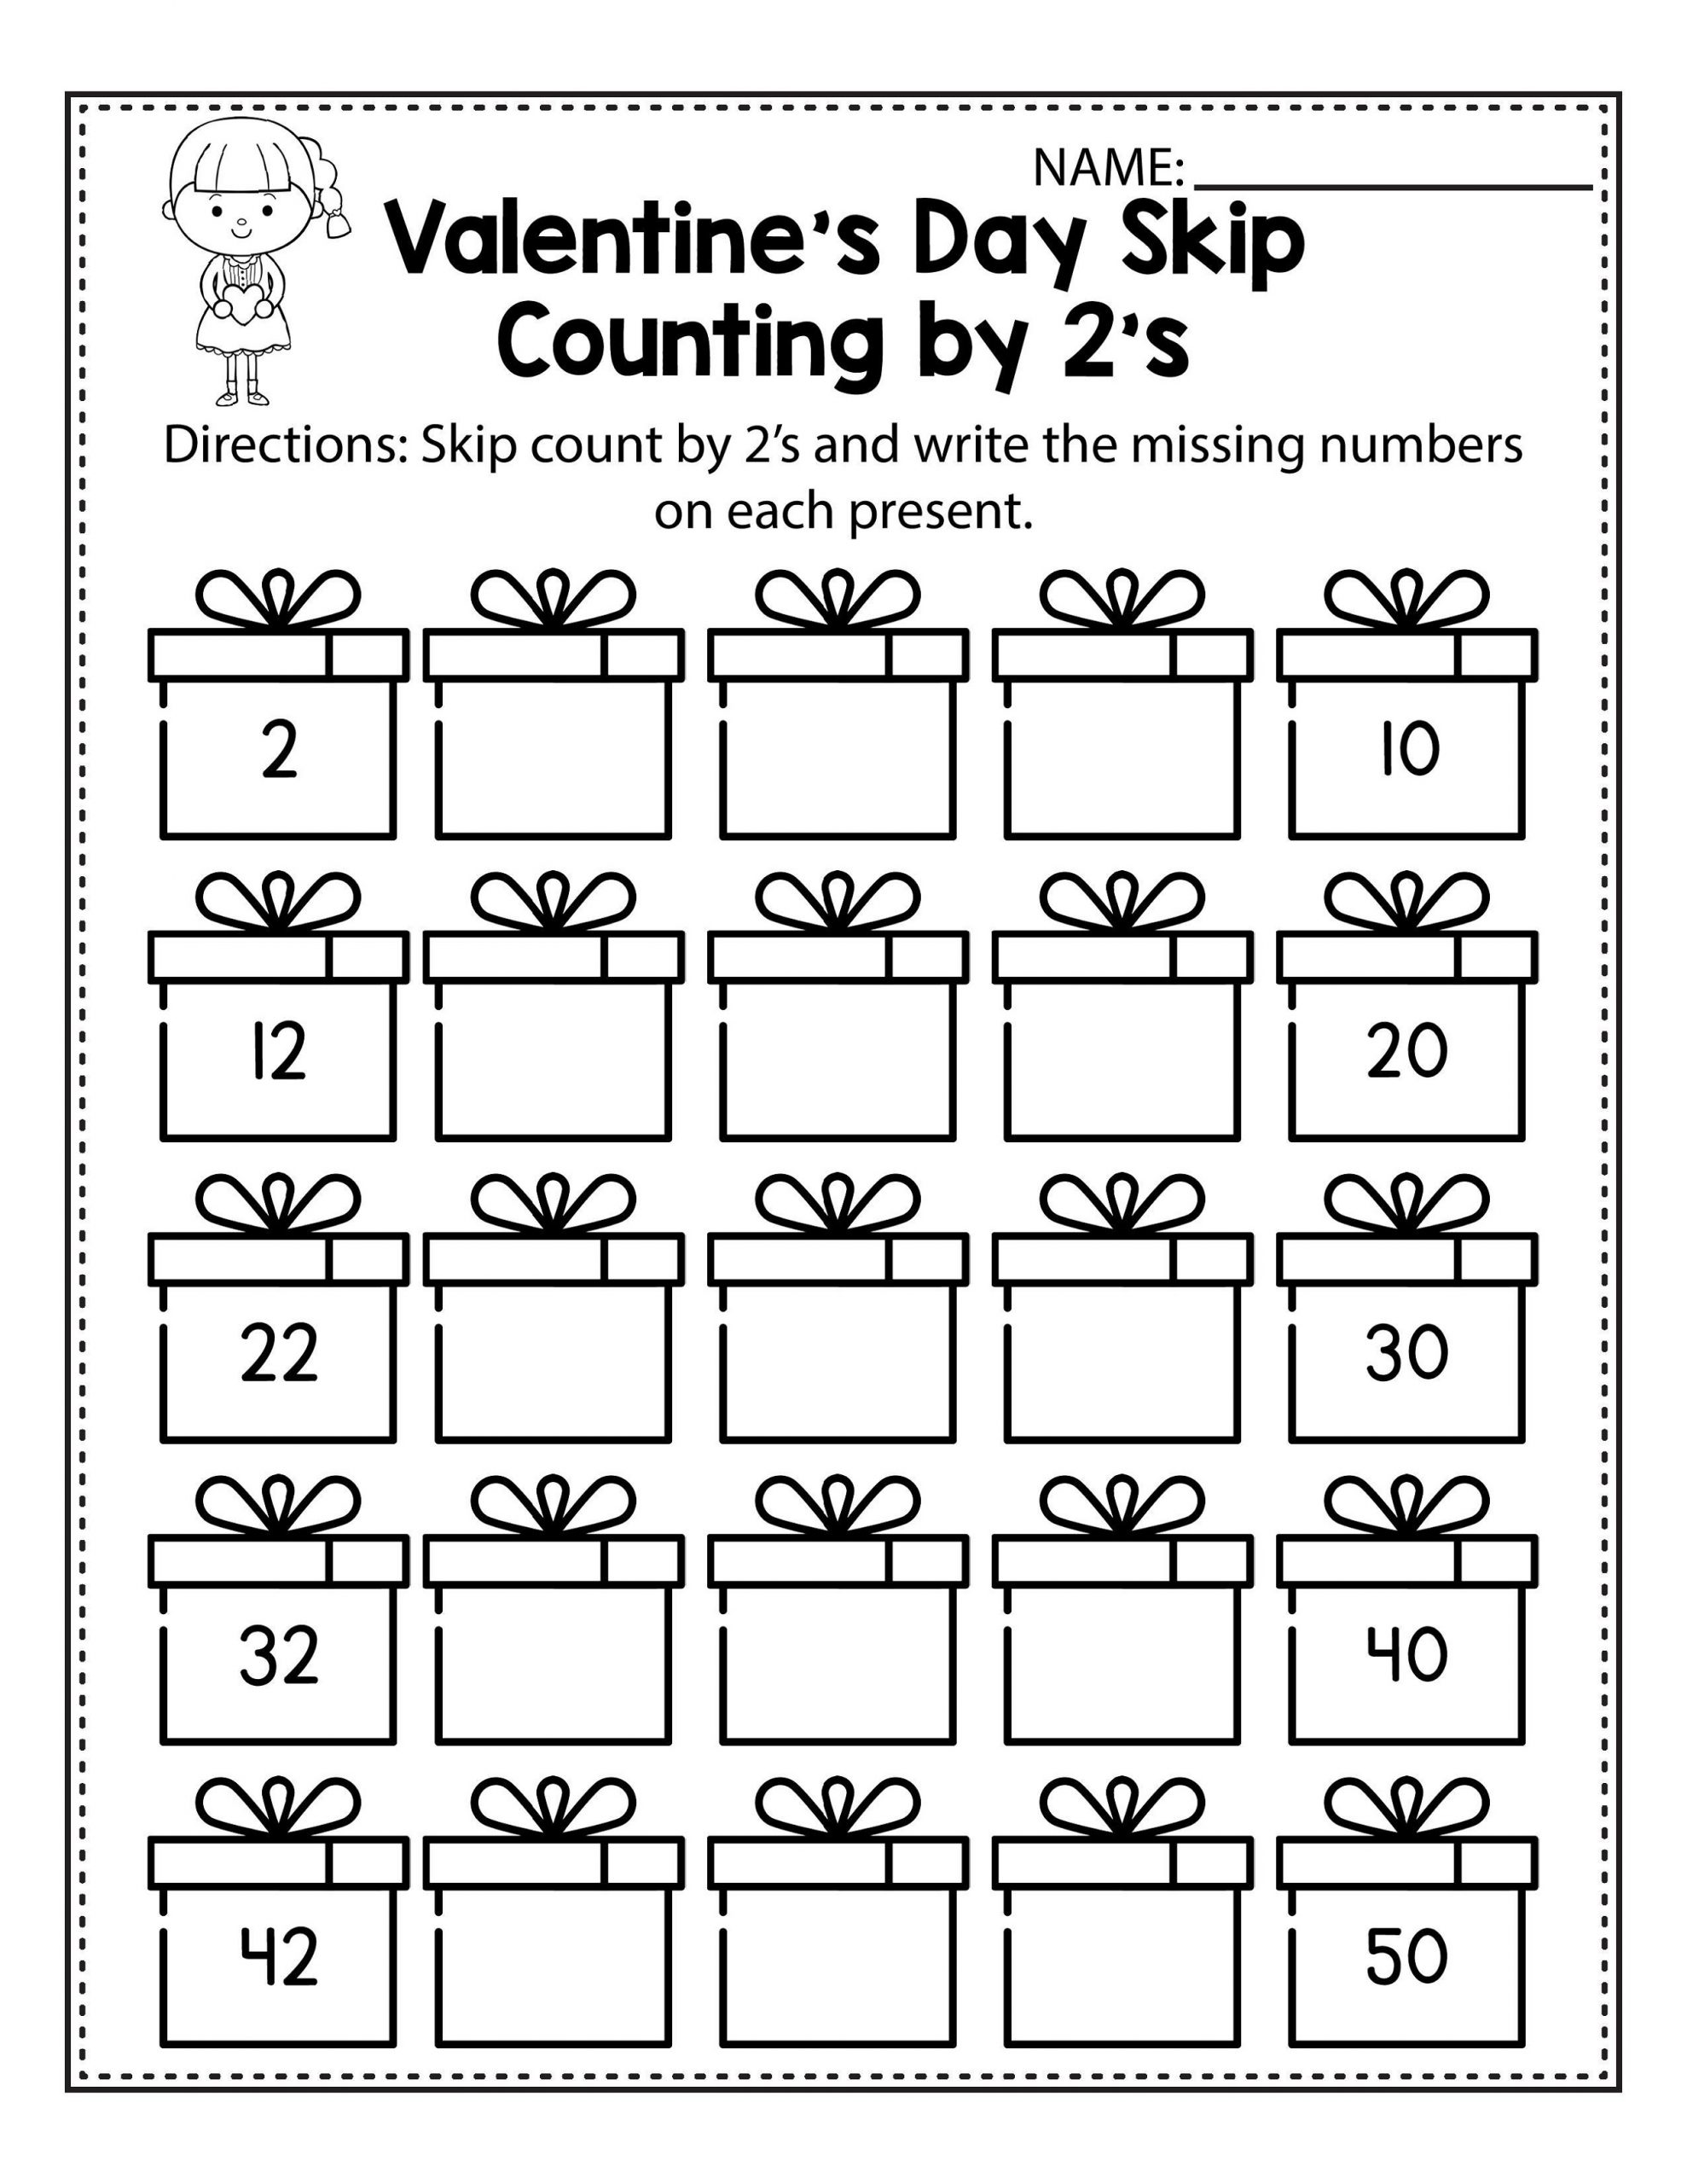 Valentine's Day Count By 2s Worksheet